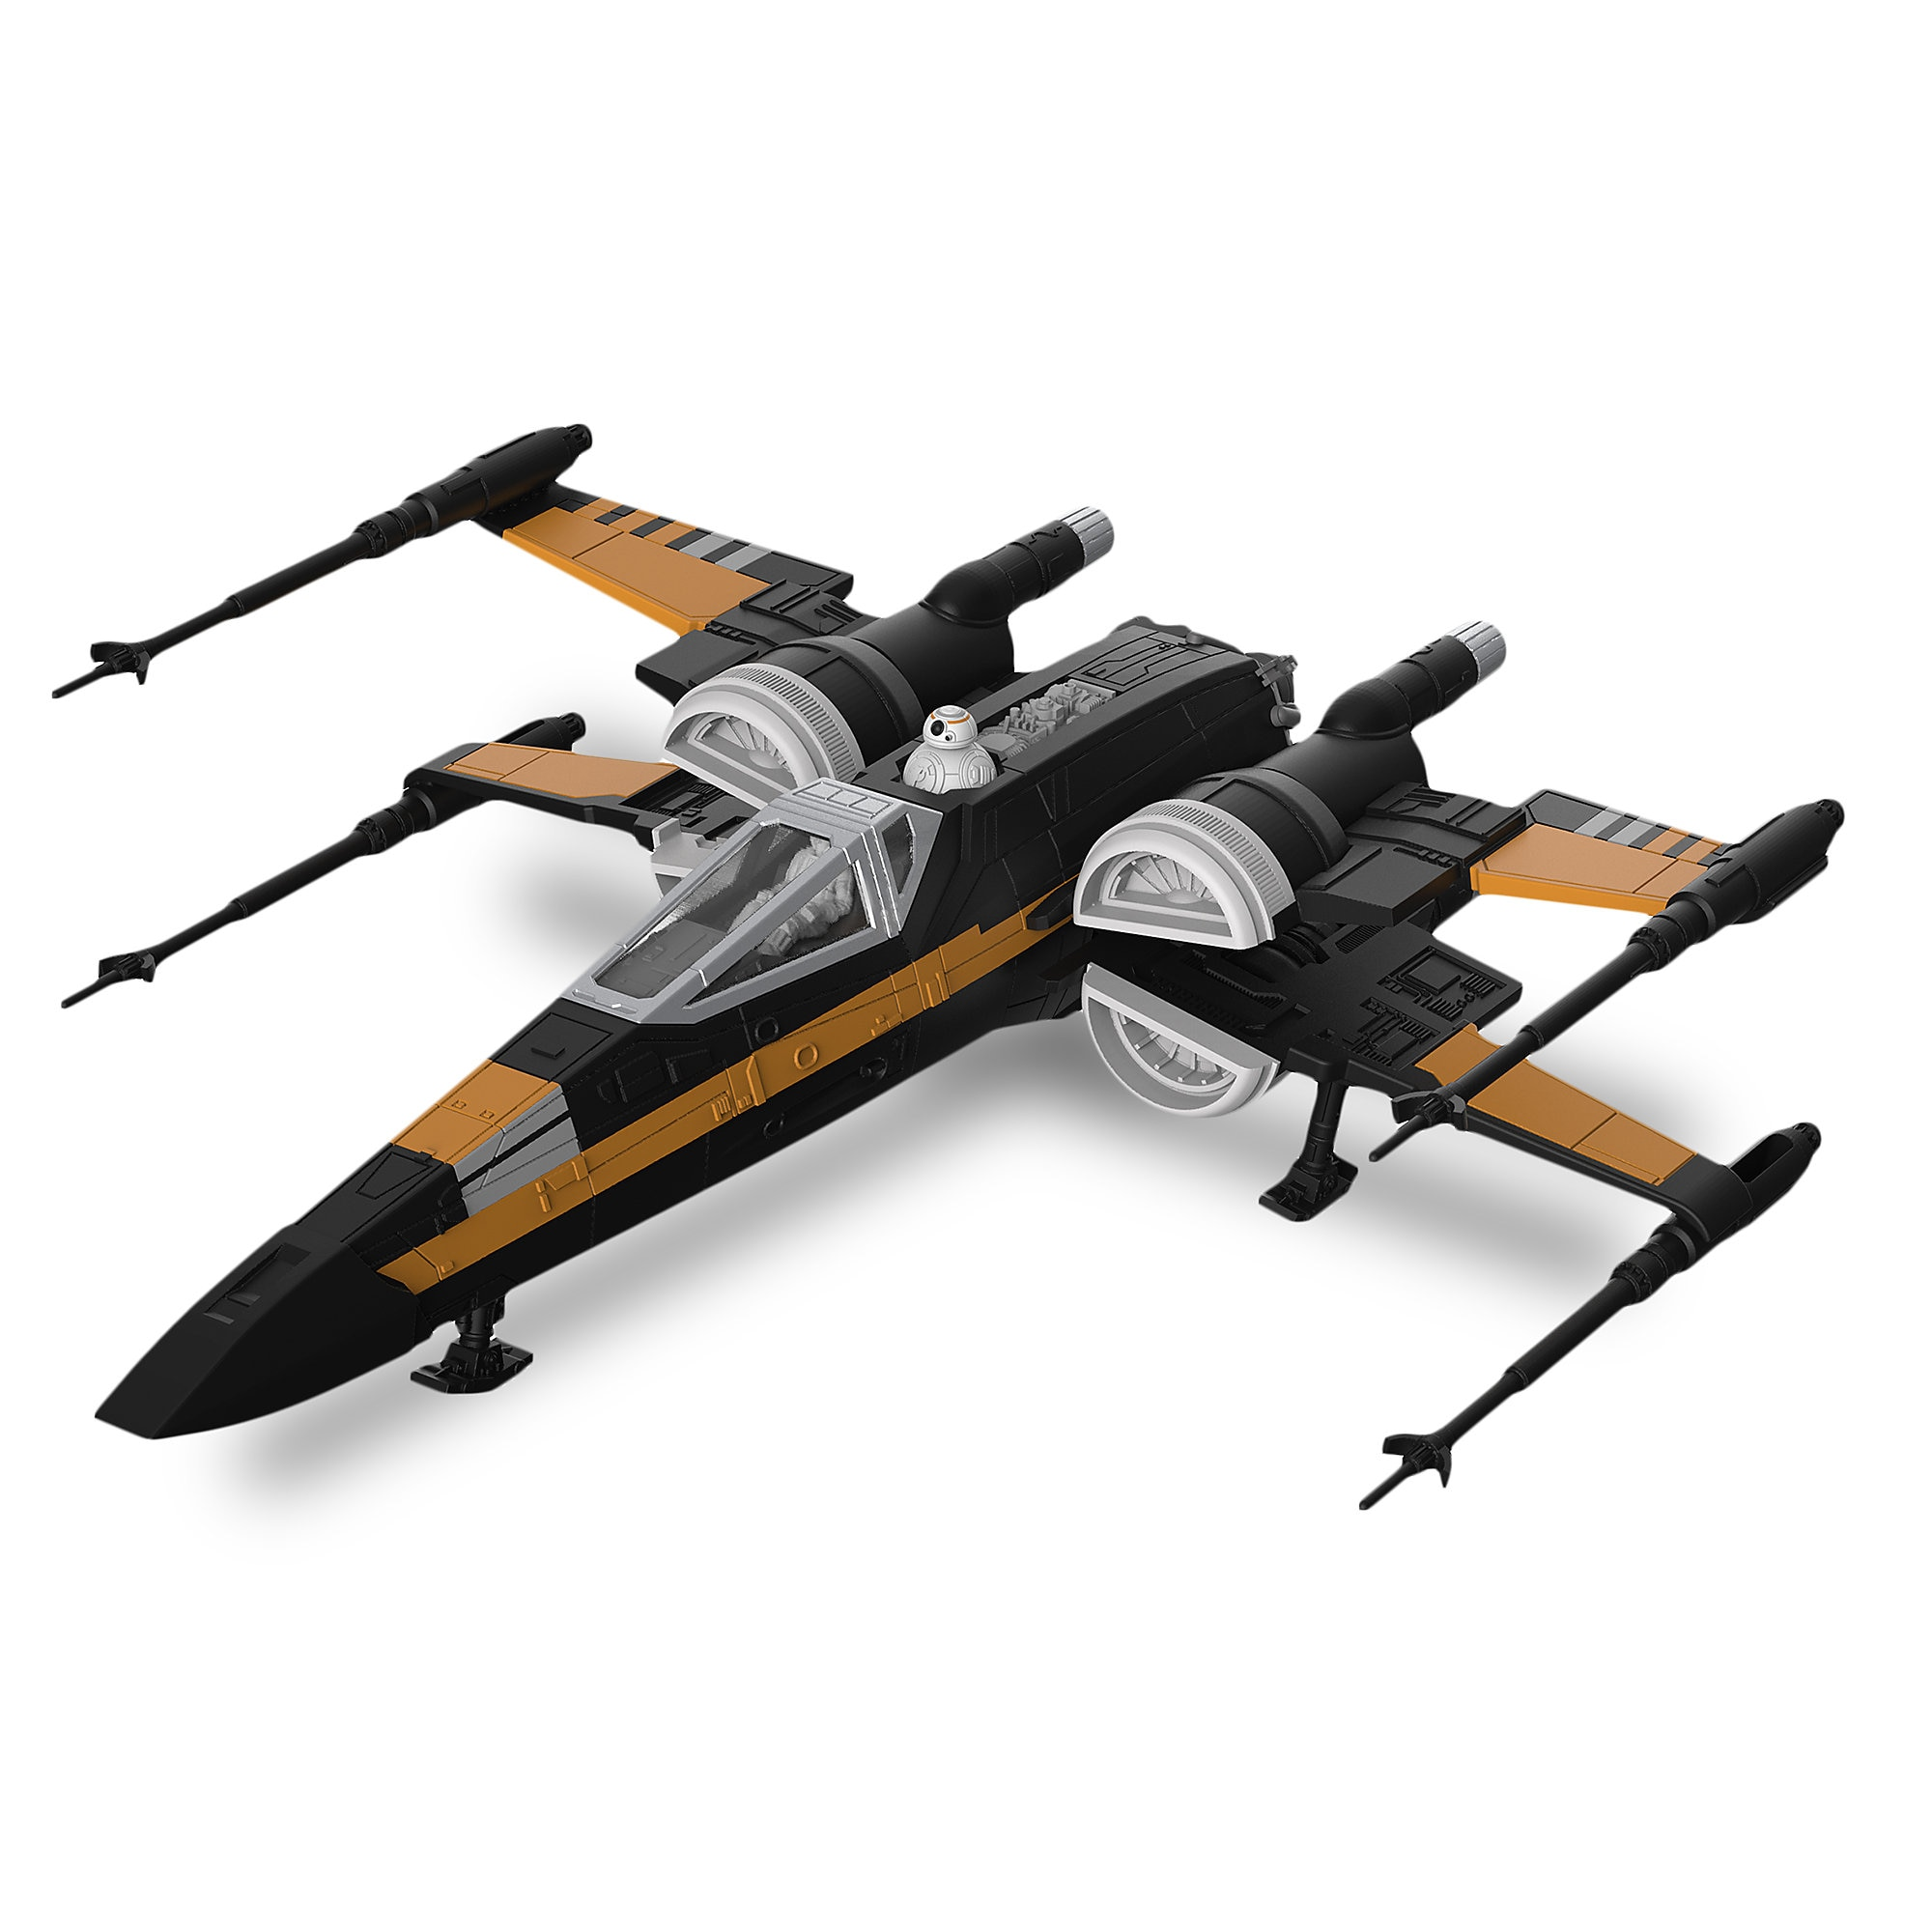 Poe's Boosted X-Wing Fighter Model Kit - Star Wars: The Last Jedi